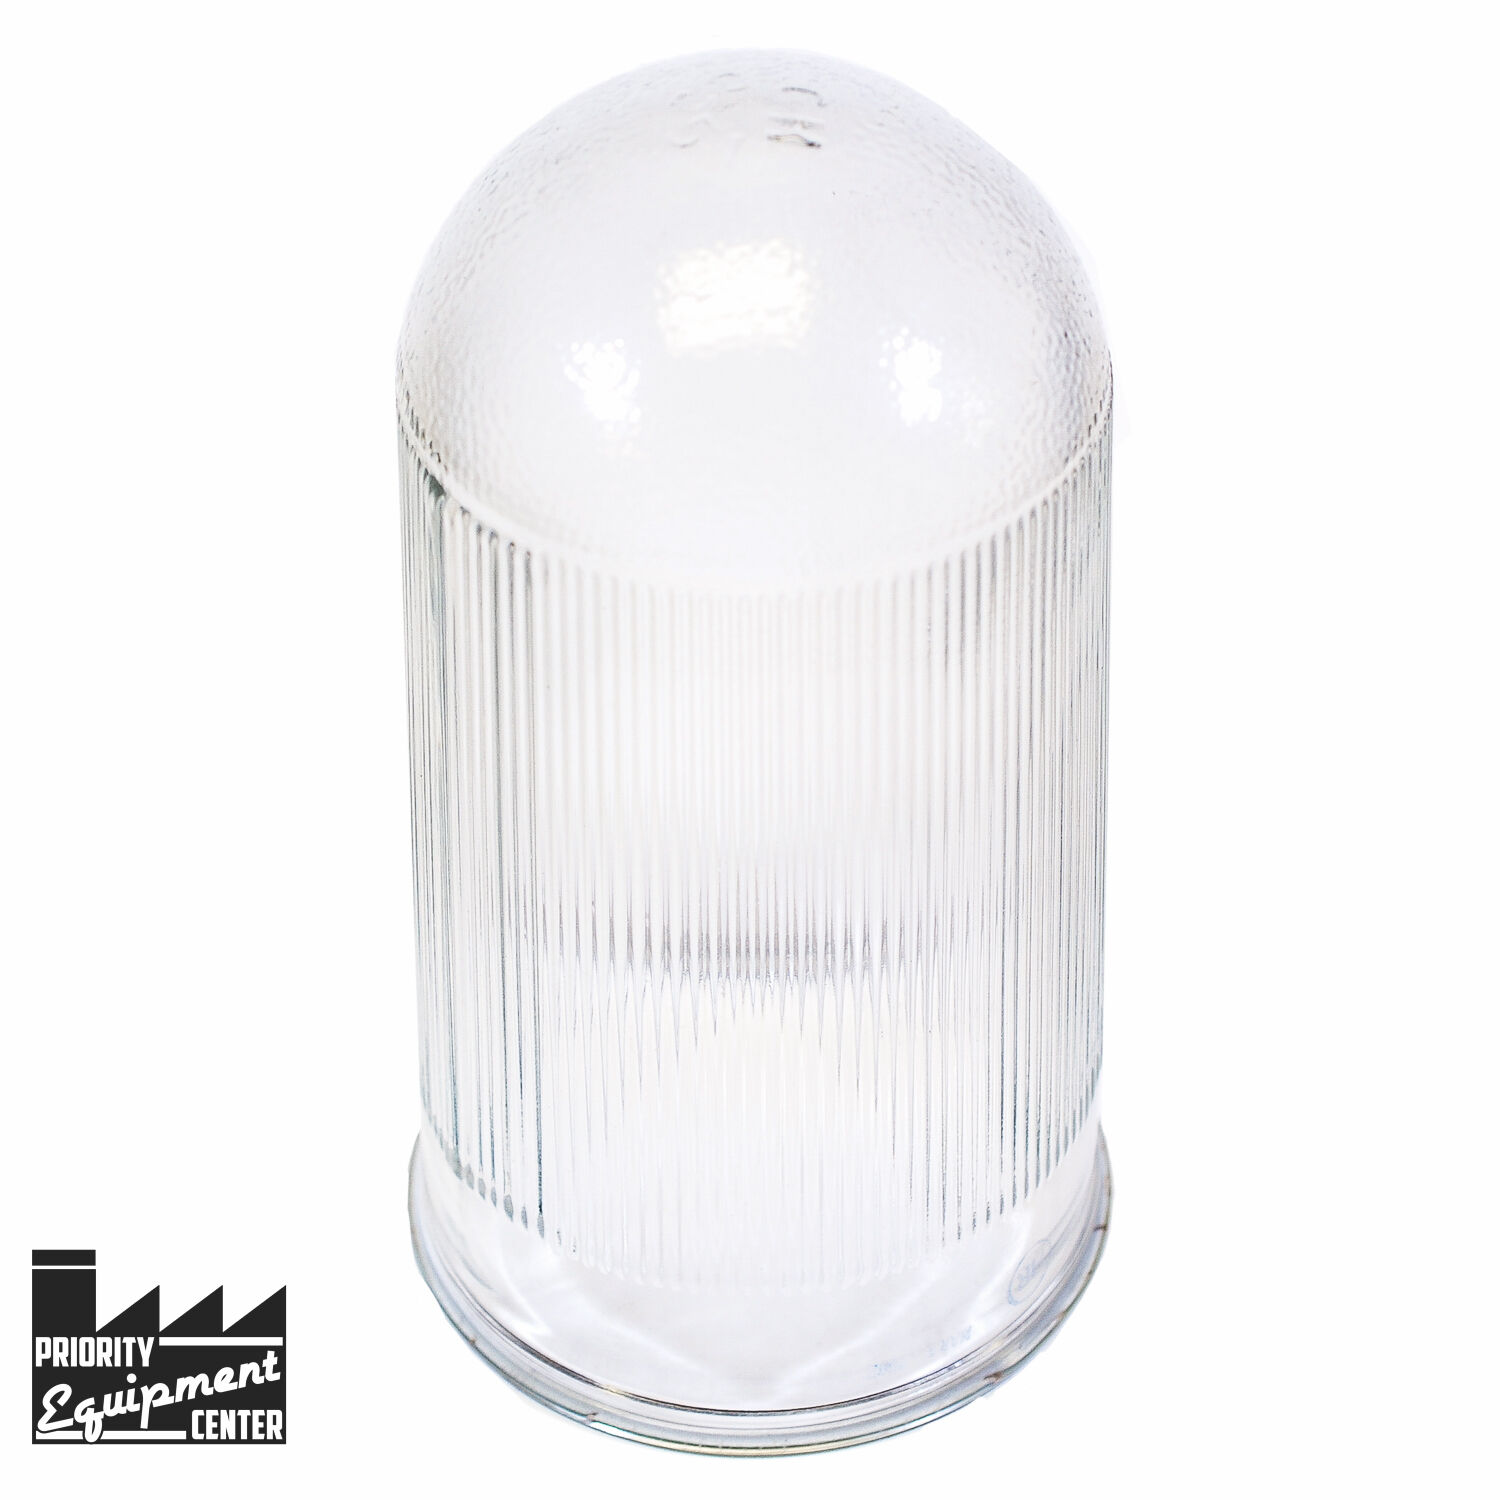 Crouse hinds c251 clear glass globe fixture lighting d470844 ebay picture 1 of 3 arubaitofo Choice Image